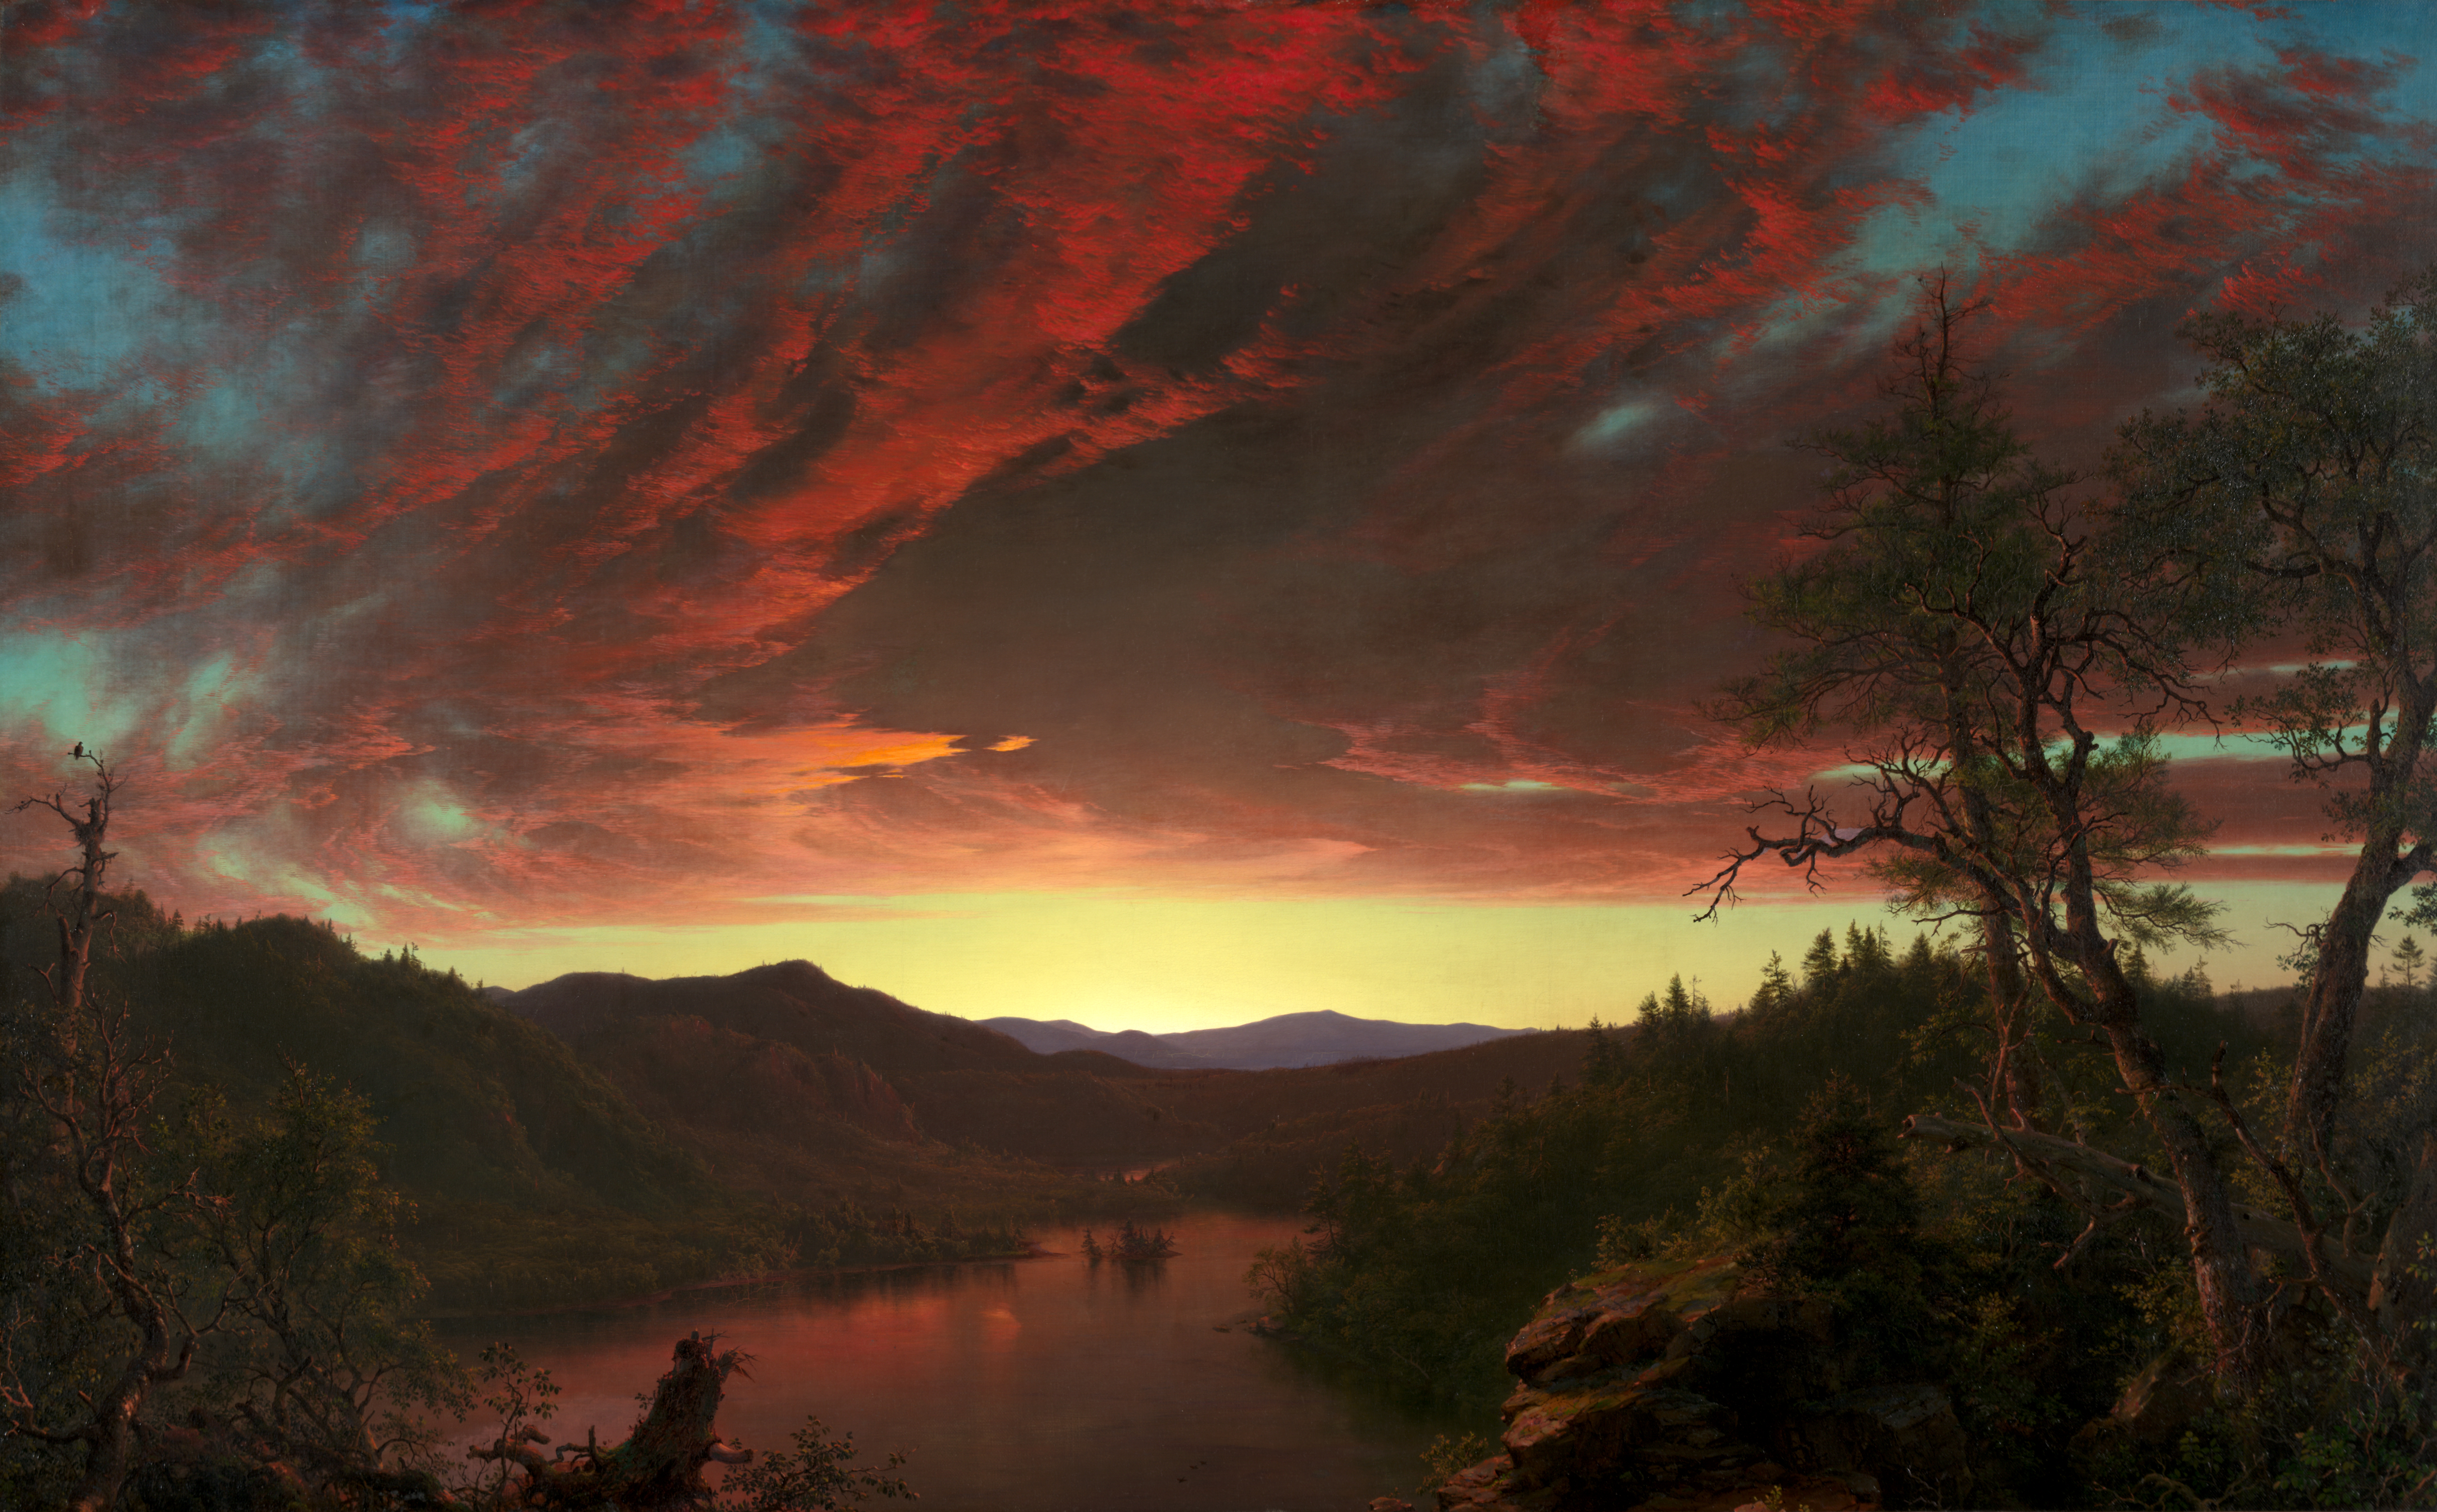 Twilight in the Wilderness, Frederic Edwin Church, 1860